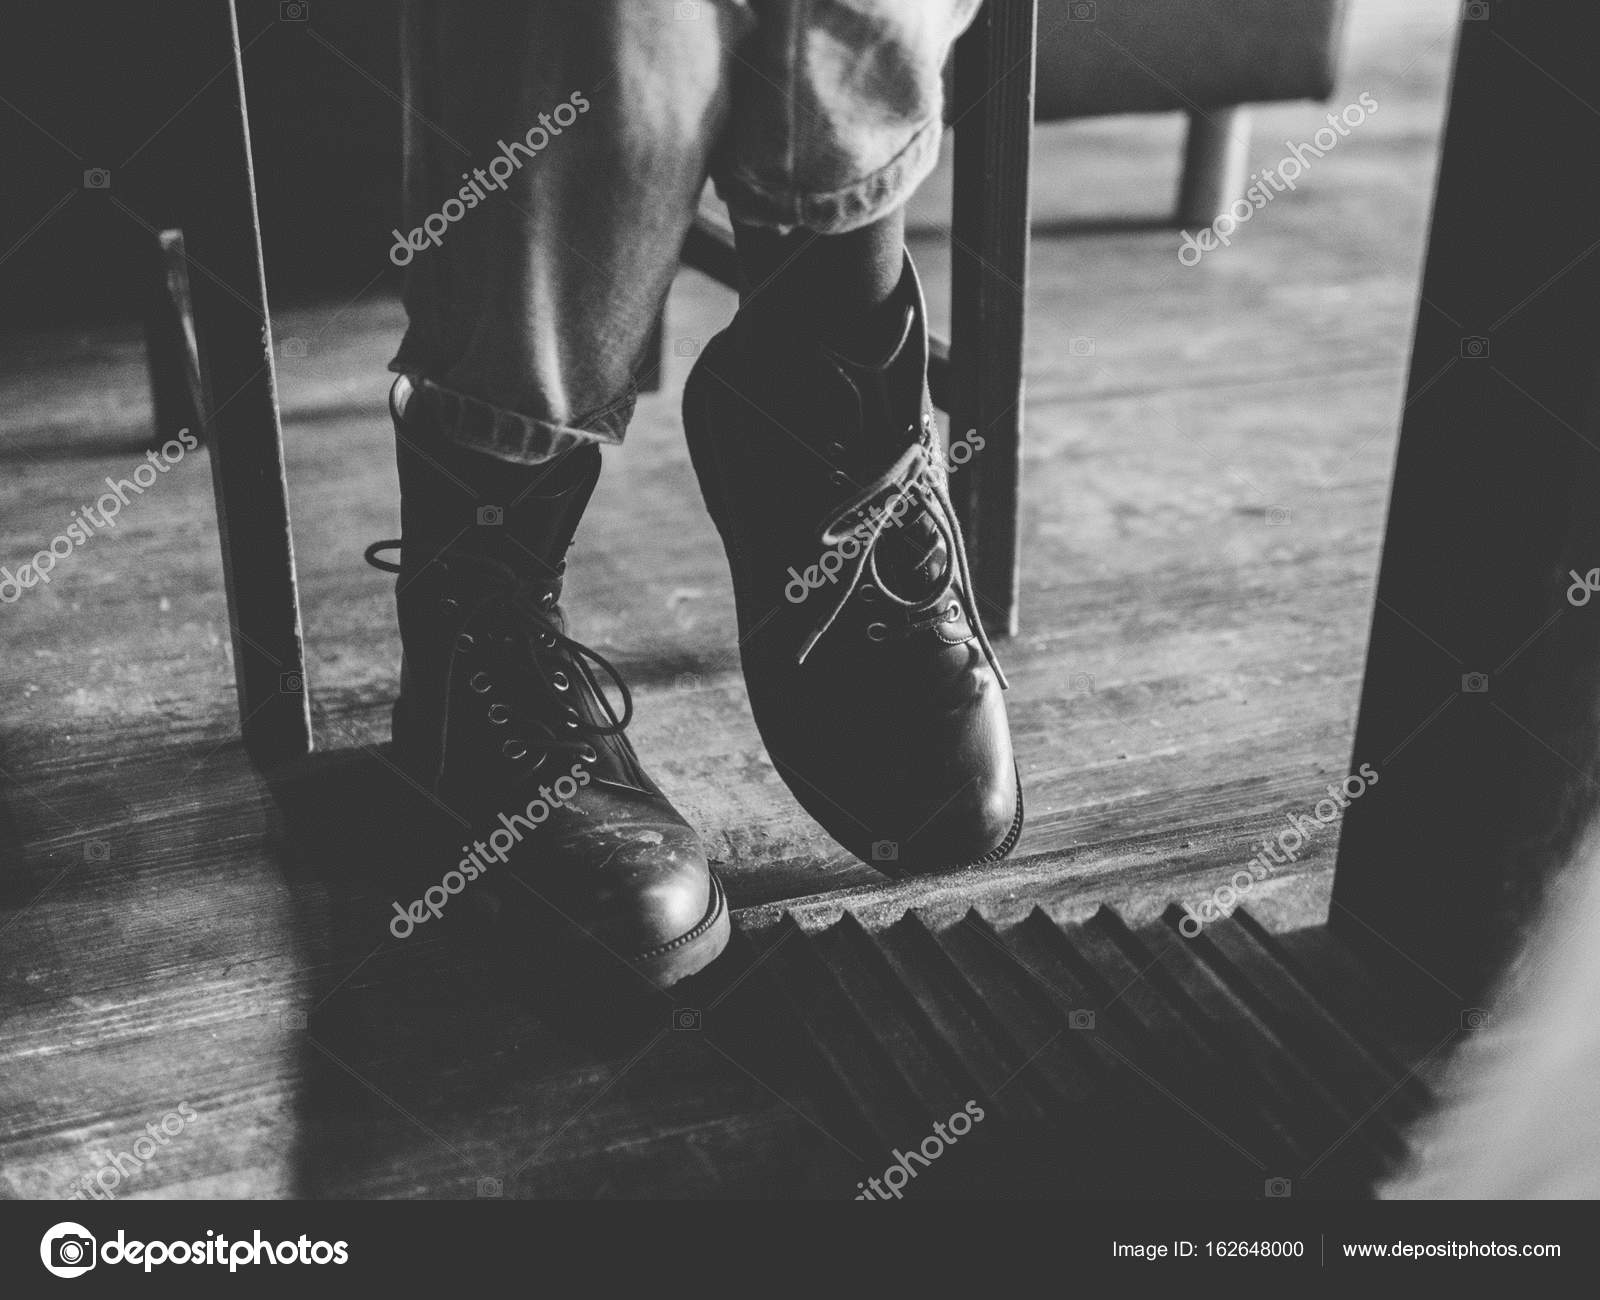 Legs shoes under table wood floor Stock Photo paulzhuk 162648000